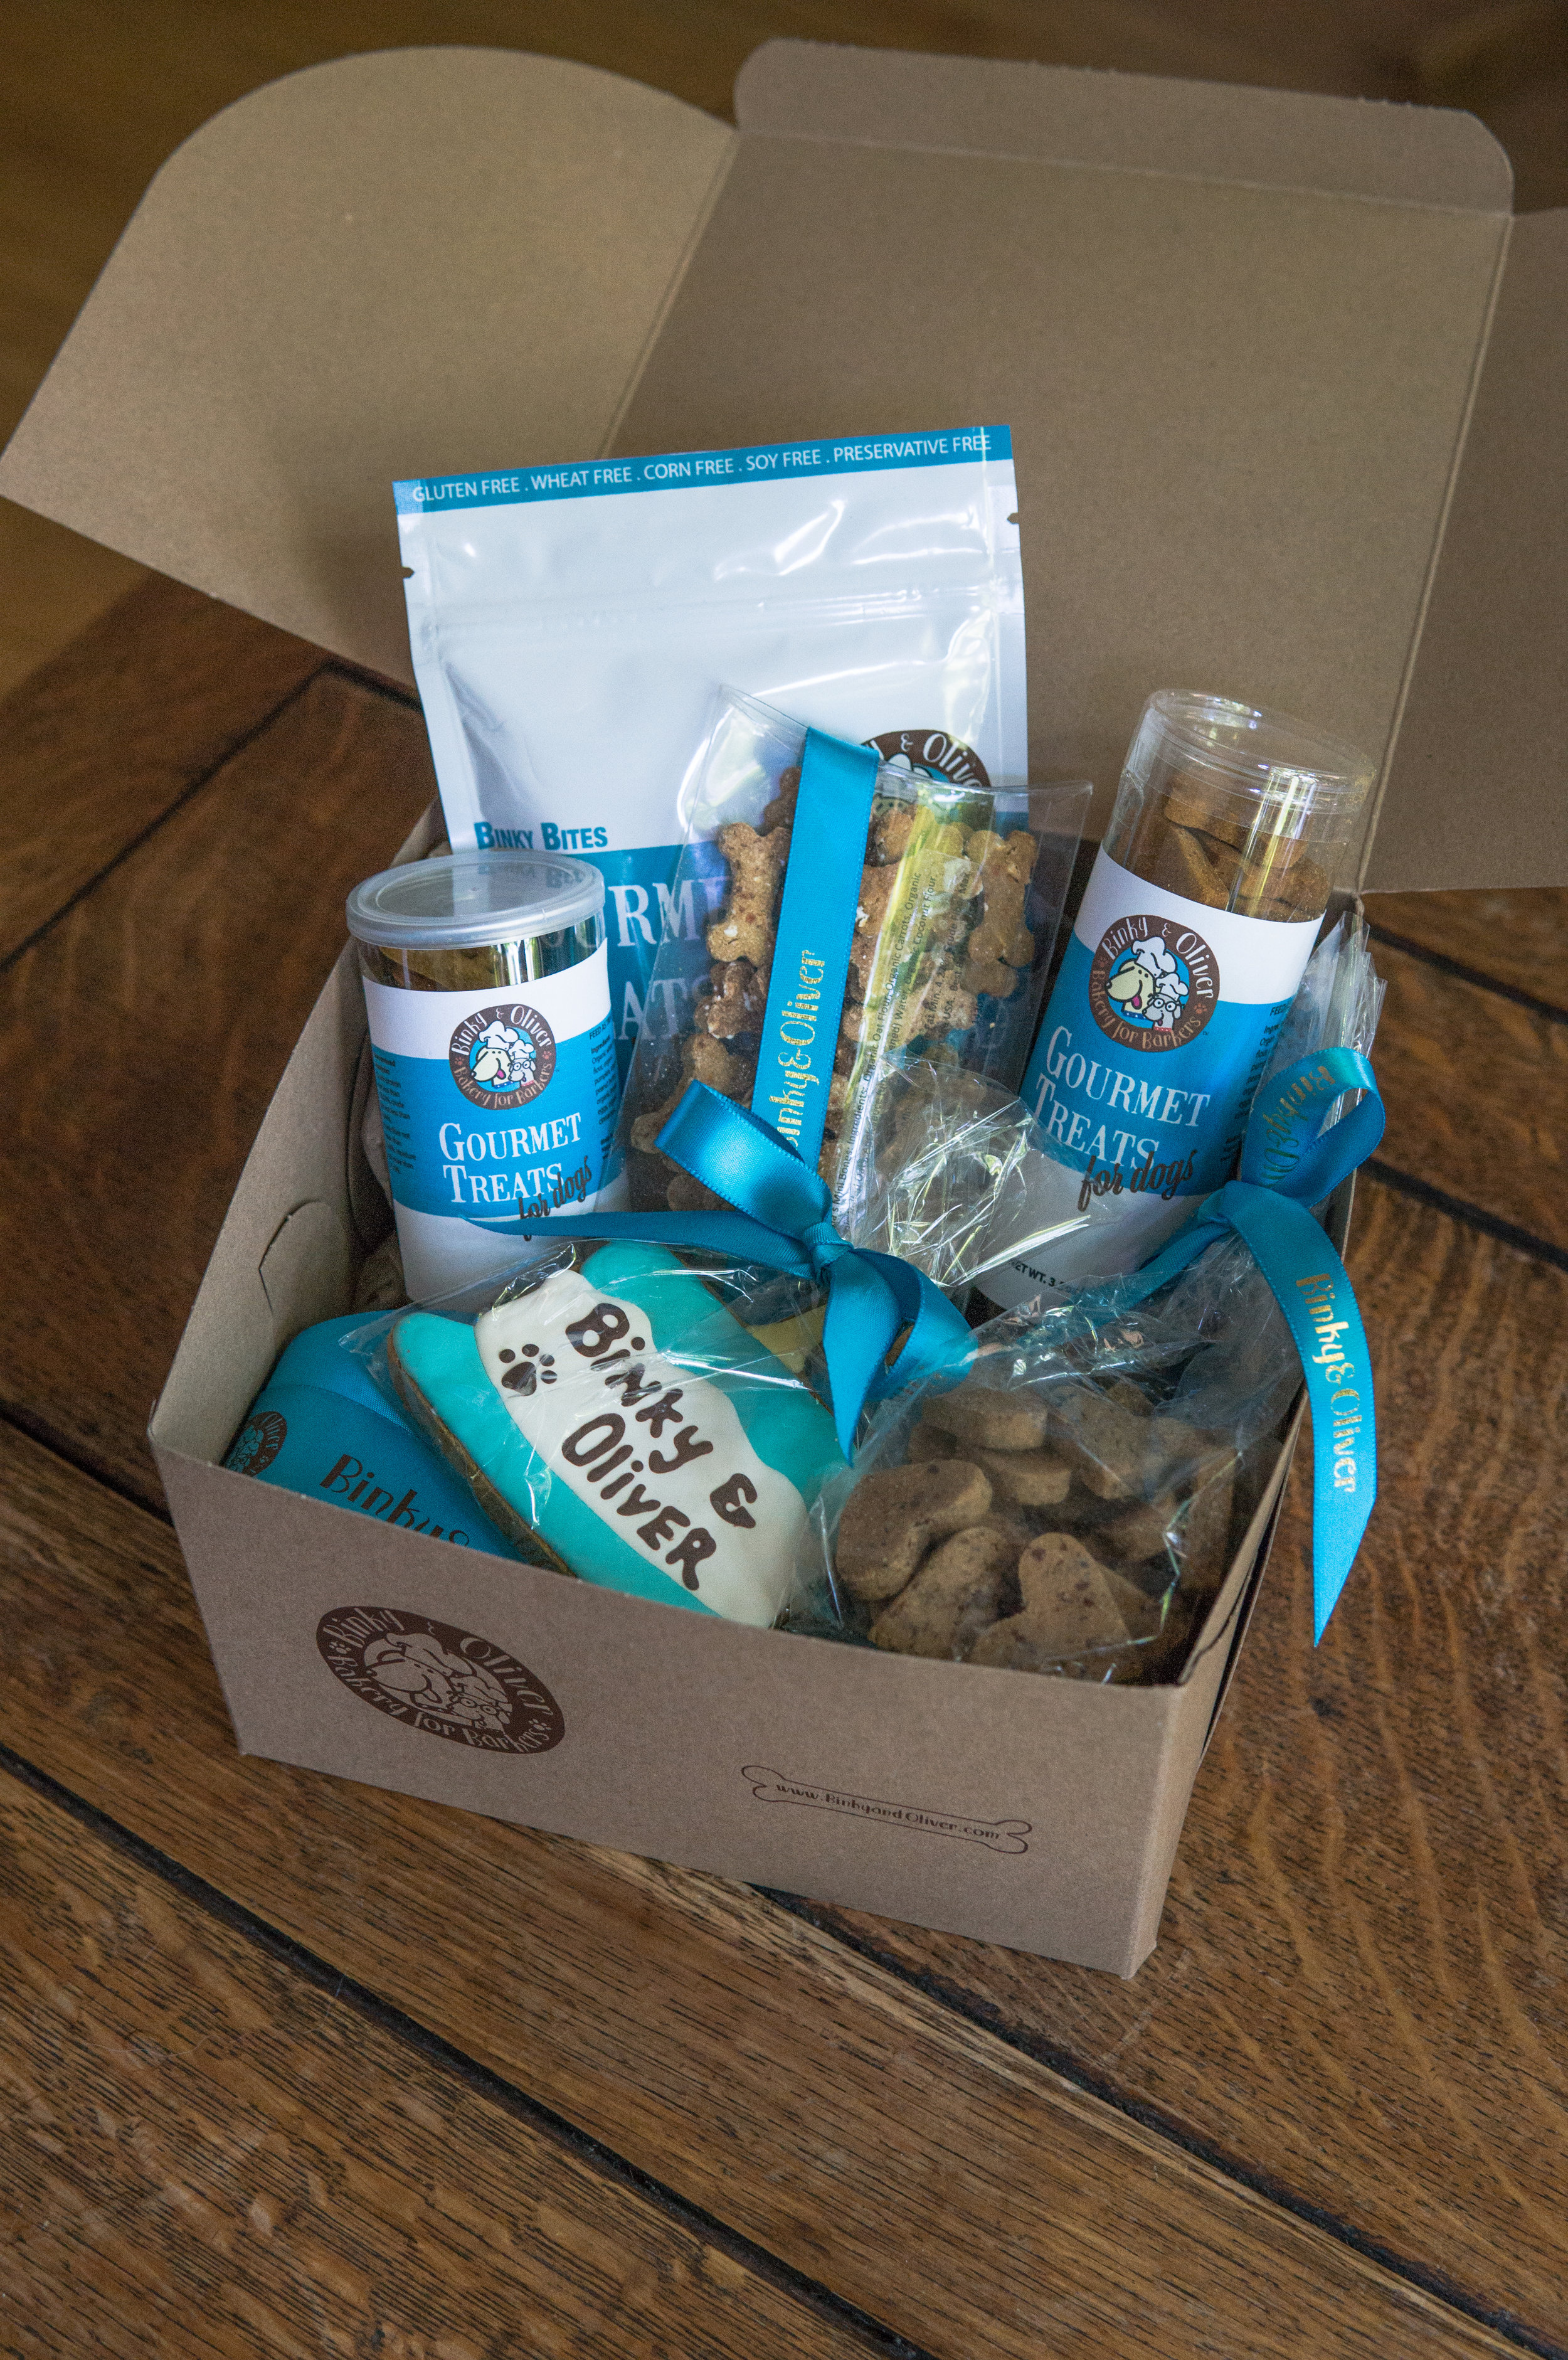 Look how cute our box and noms were packaged! In our box, we received 5 bags of treats + 1 big cookie with icing. Yum!